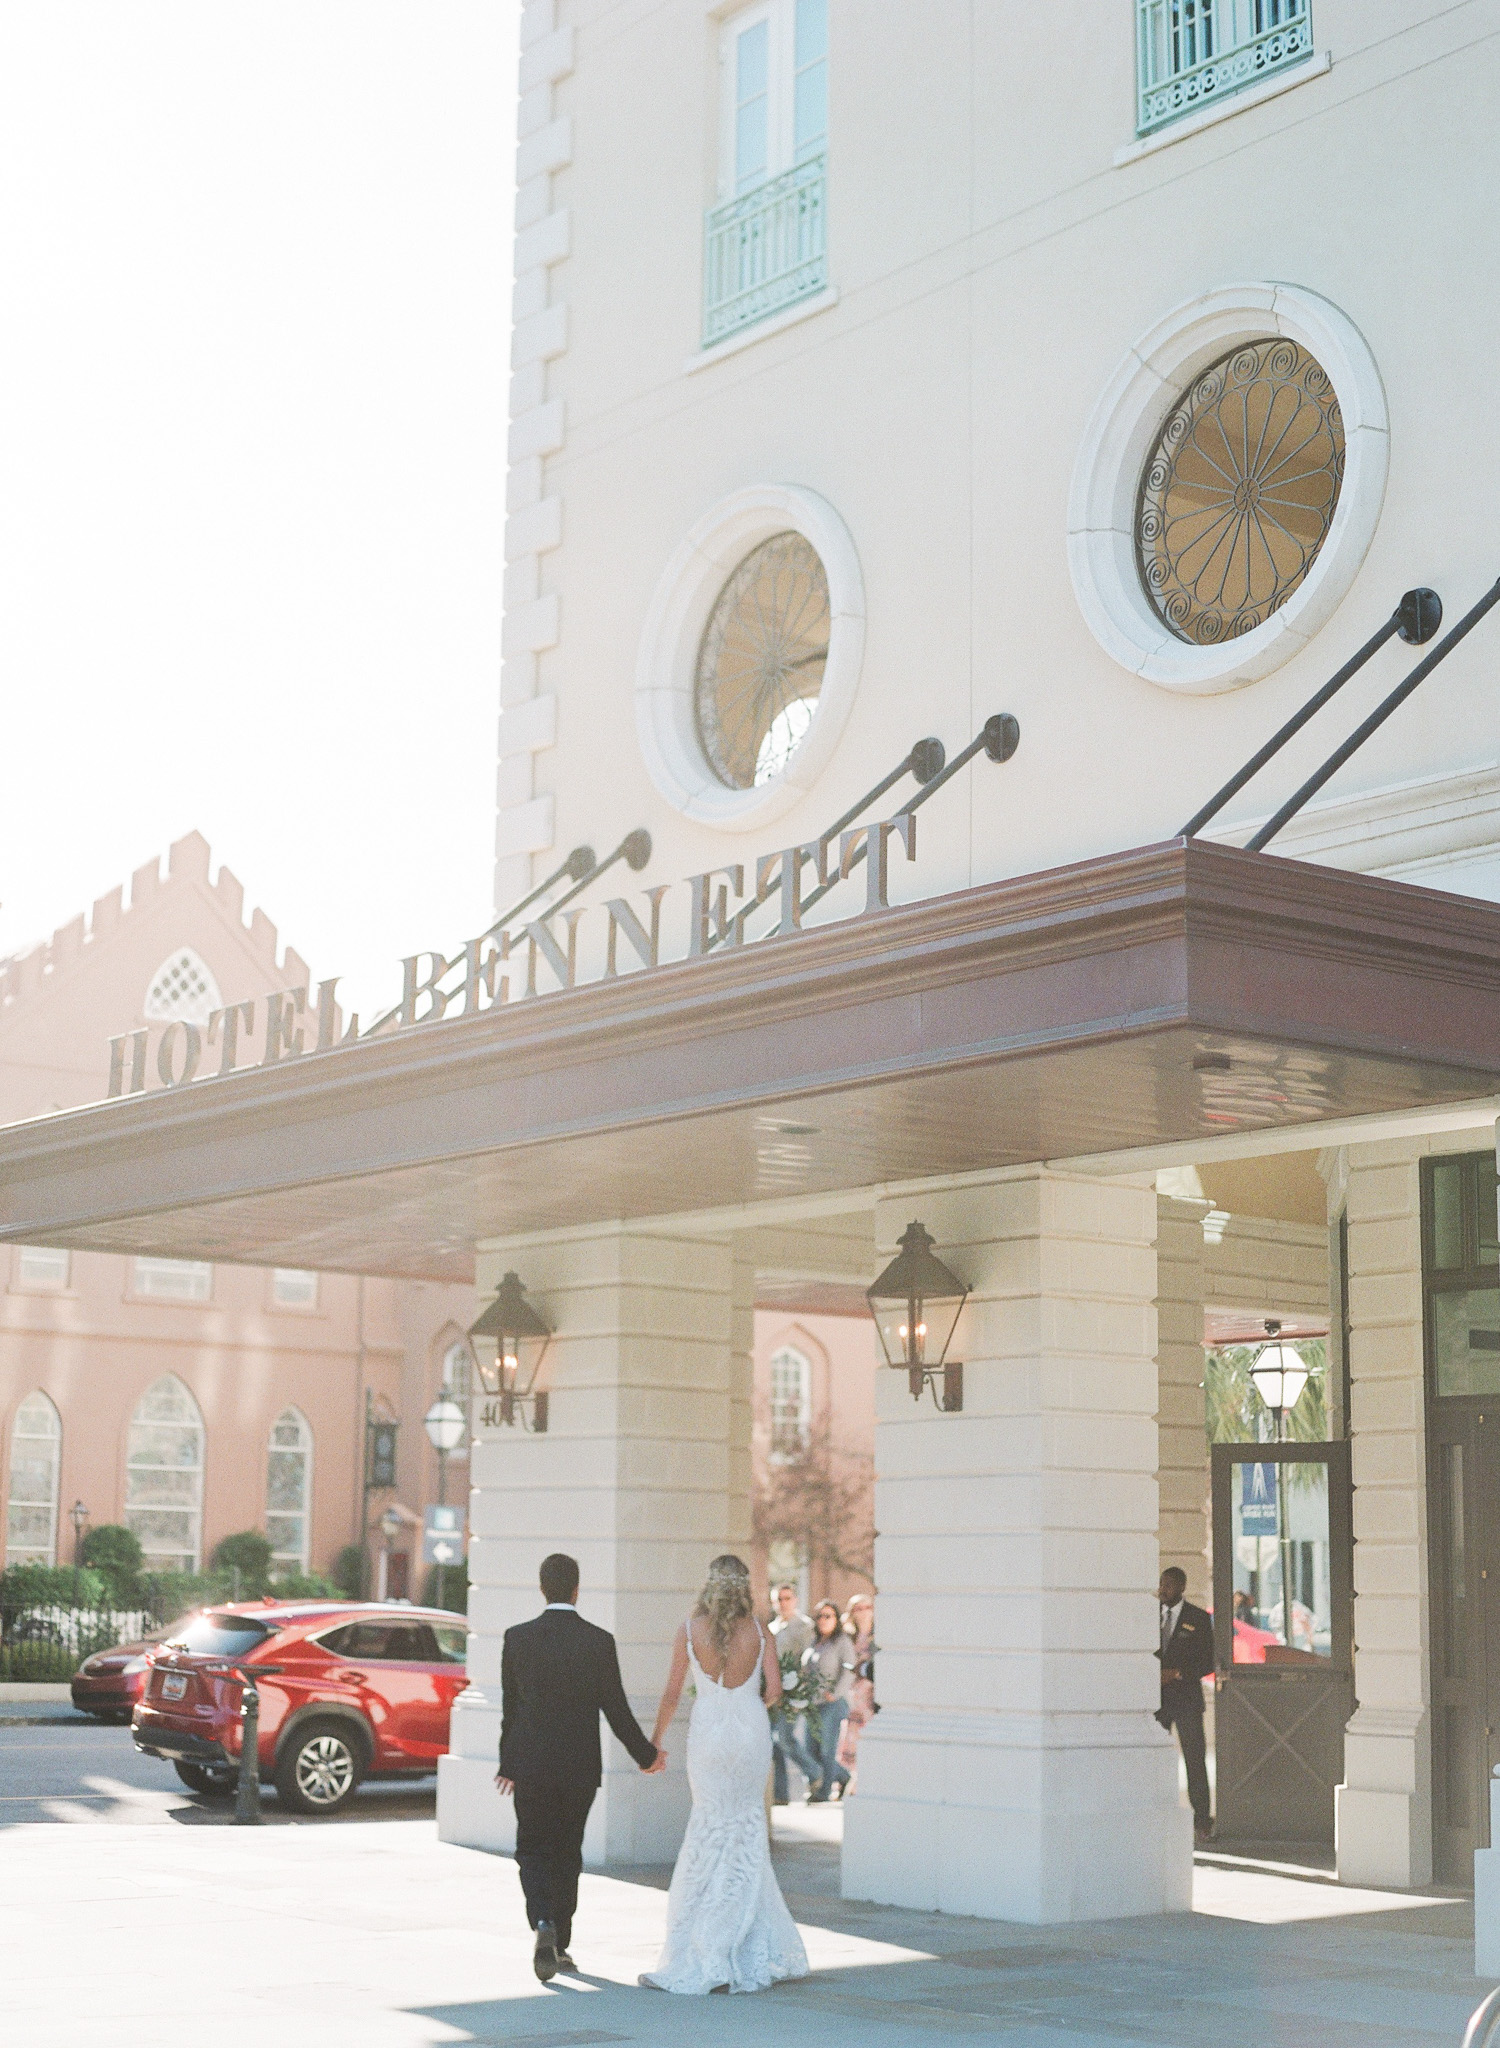 Charleston-Wedding-Hotel-Bennett-87.jpg